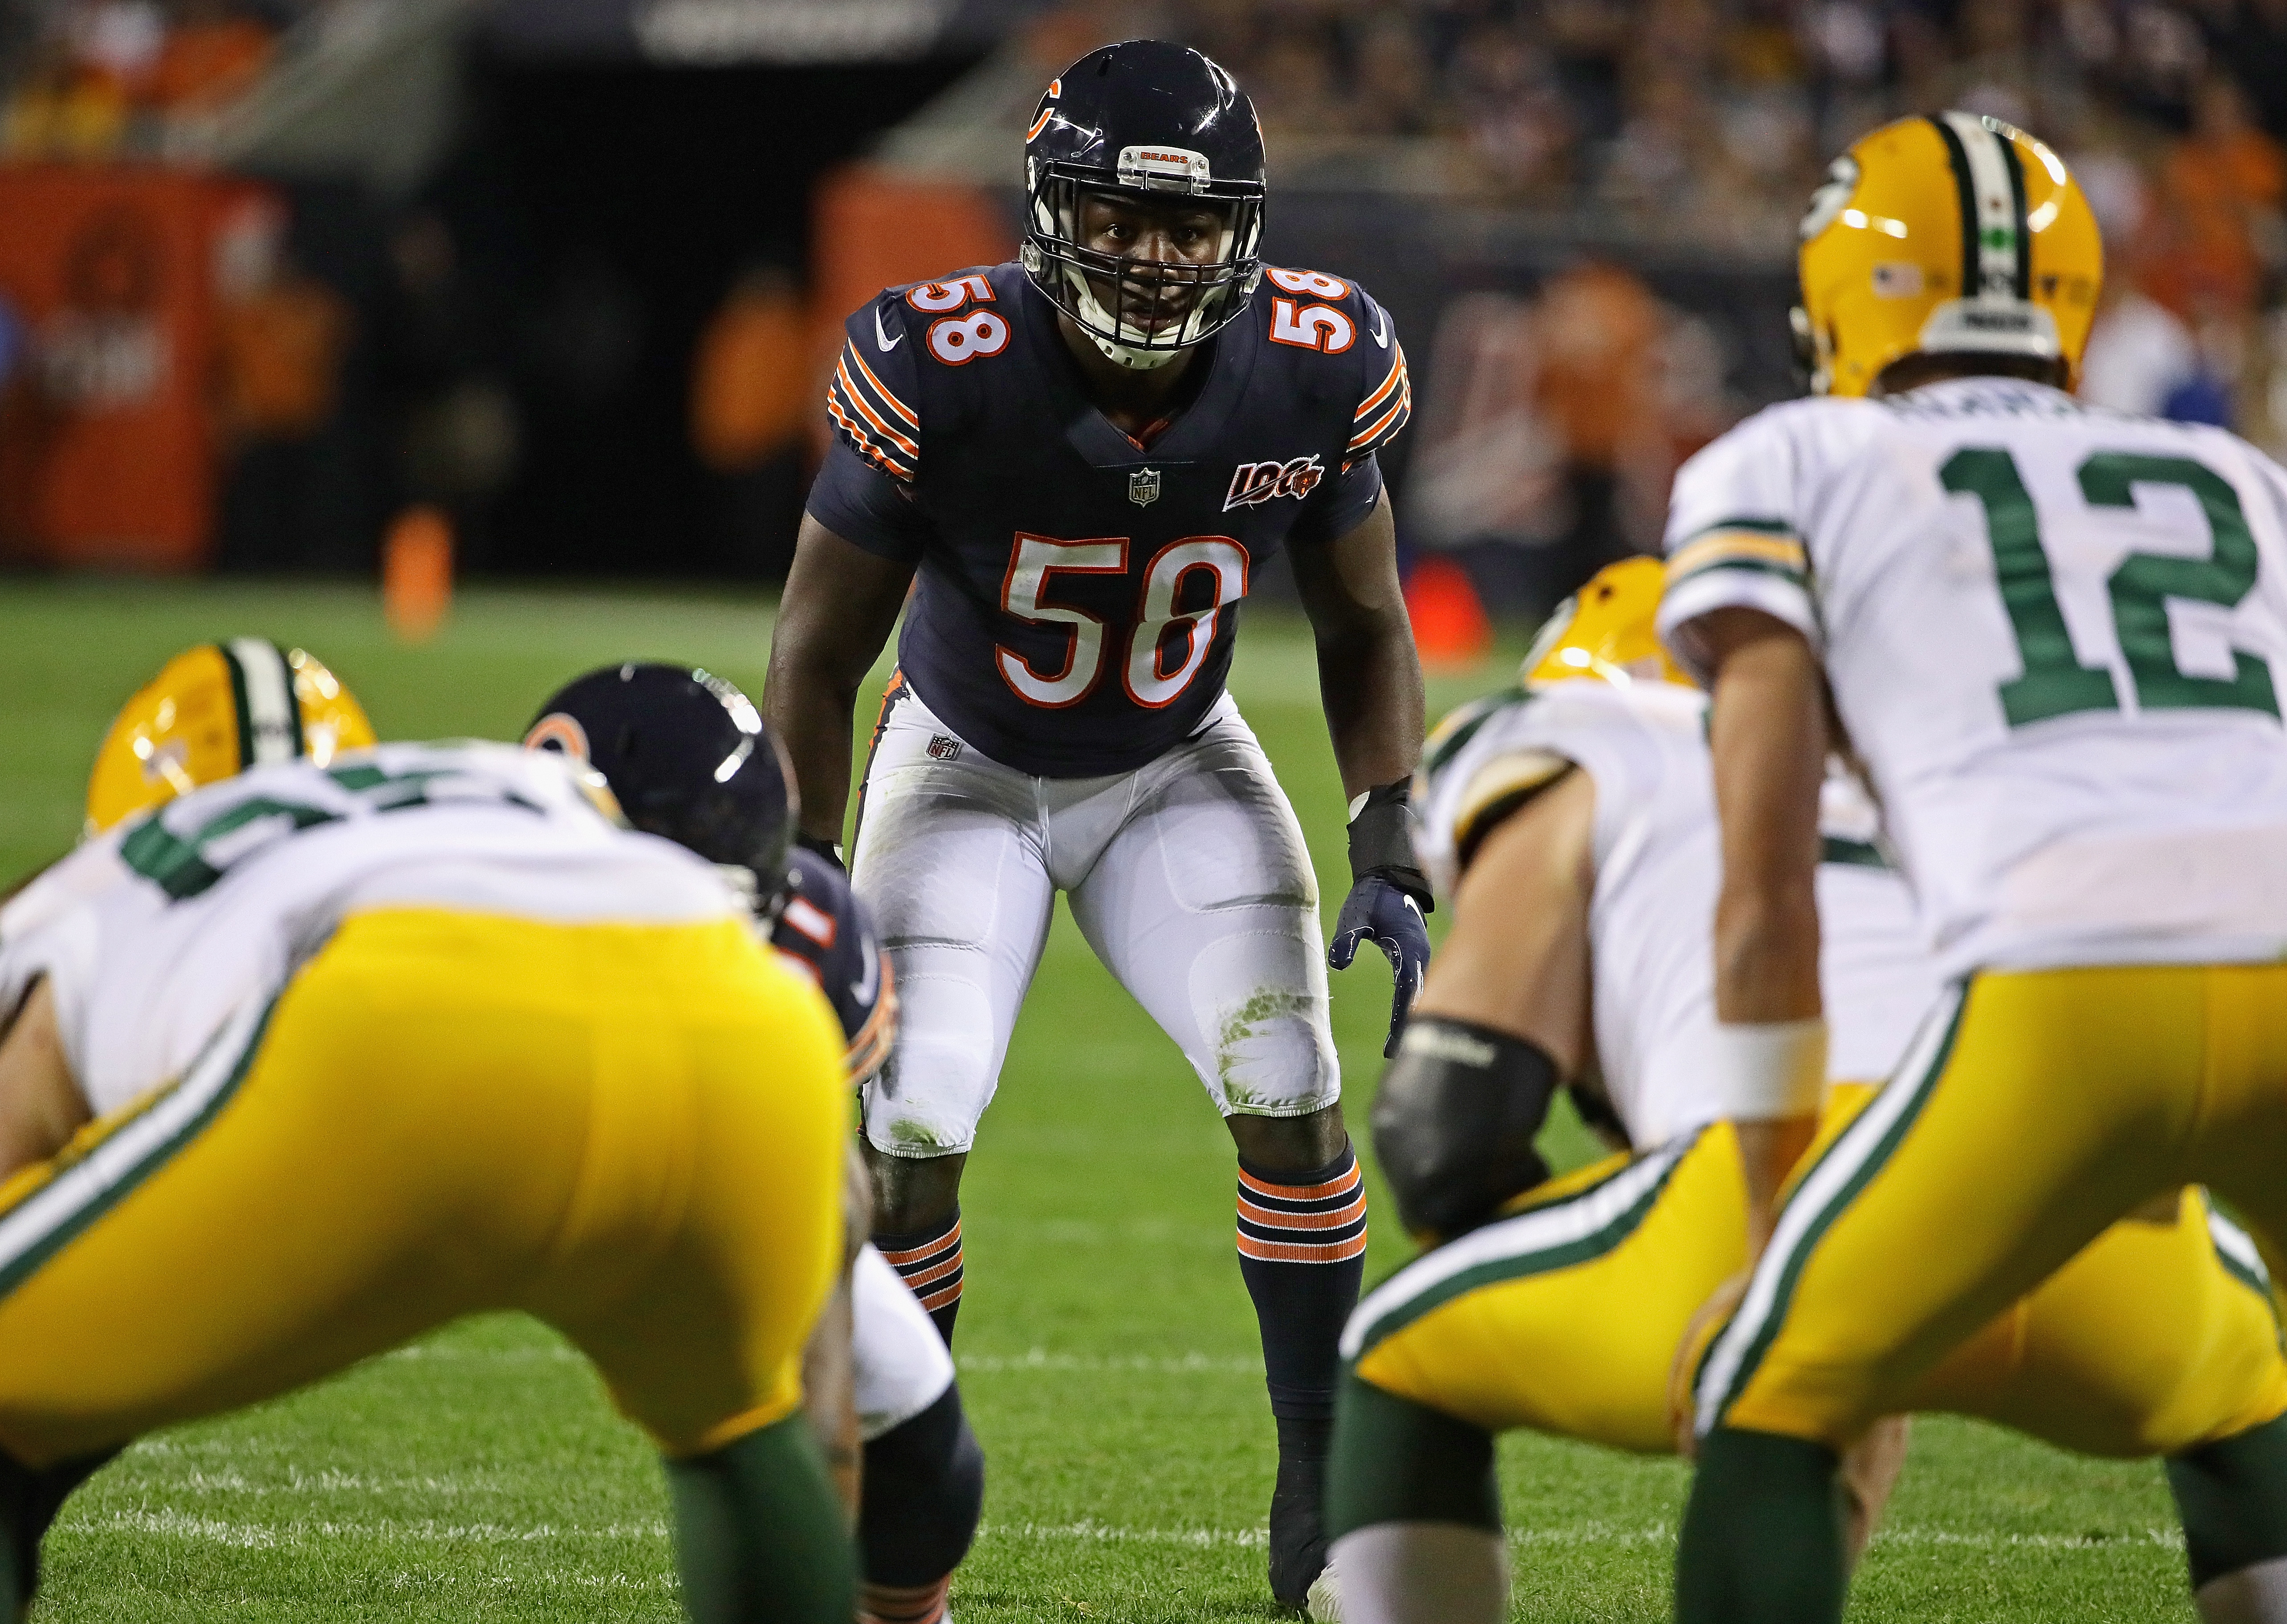 Bears linebacker Roquan Smith prepares for the snap against the Packers in September. Smith tore a pectoral muscle against the Cowboys on Thursday and will miss the rest of the season.